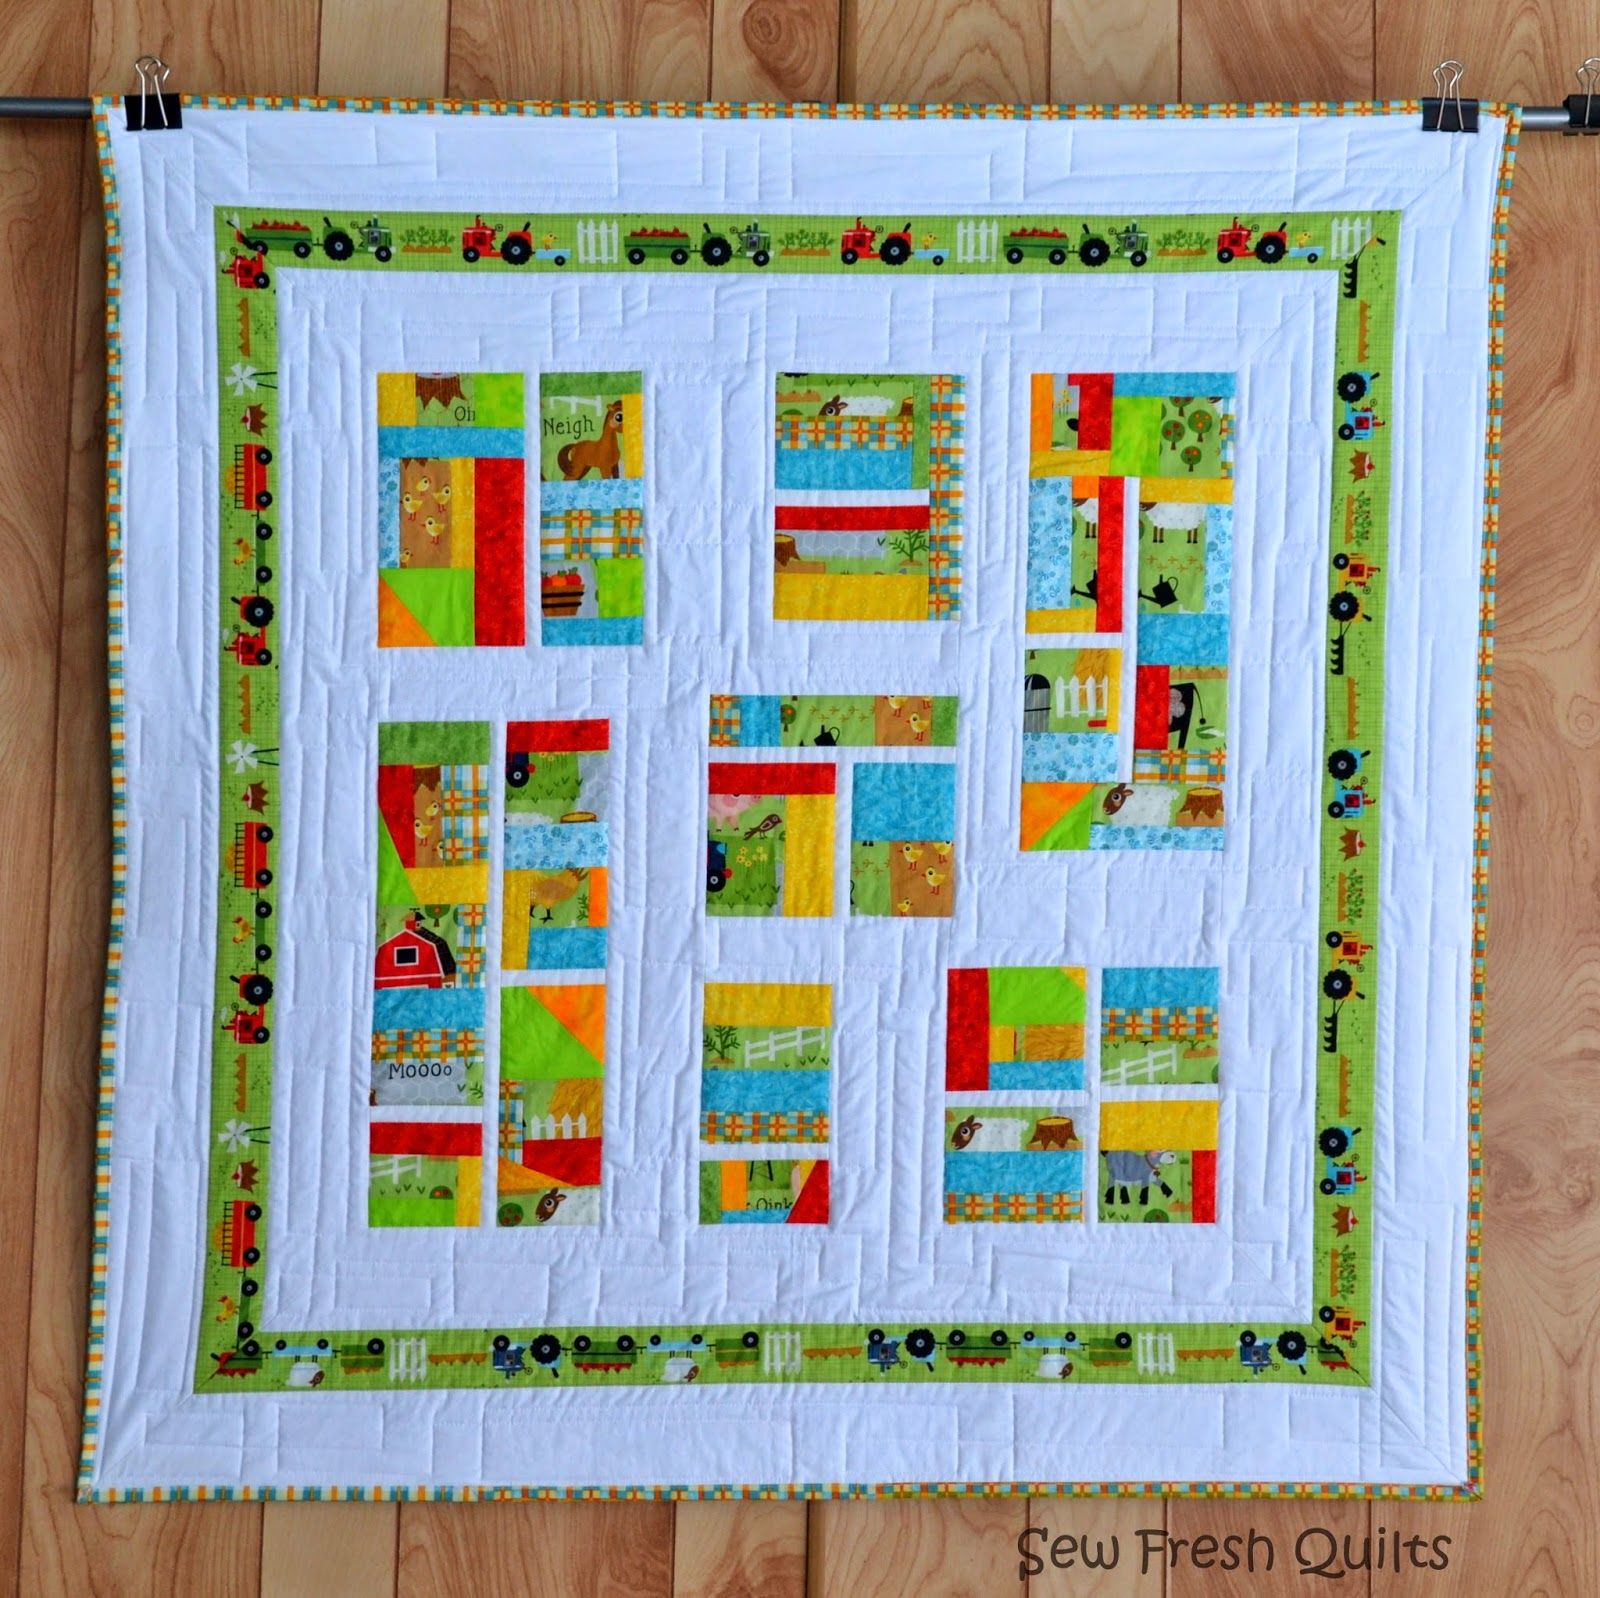 http://sewfreshquilts.blogspot.ca/2013/11/oink-doodle-moo-twin-baby-quilts.html